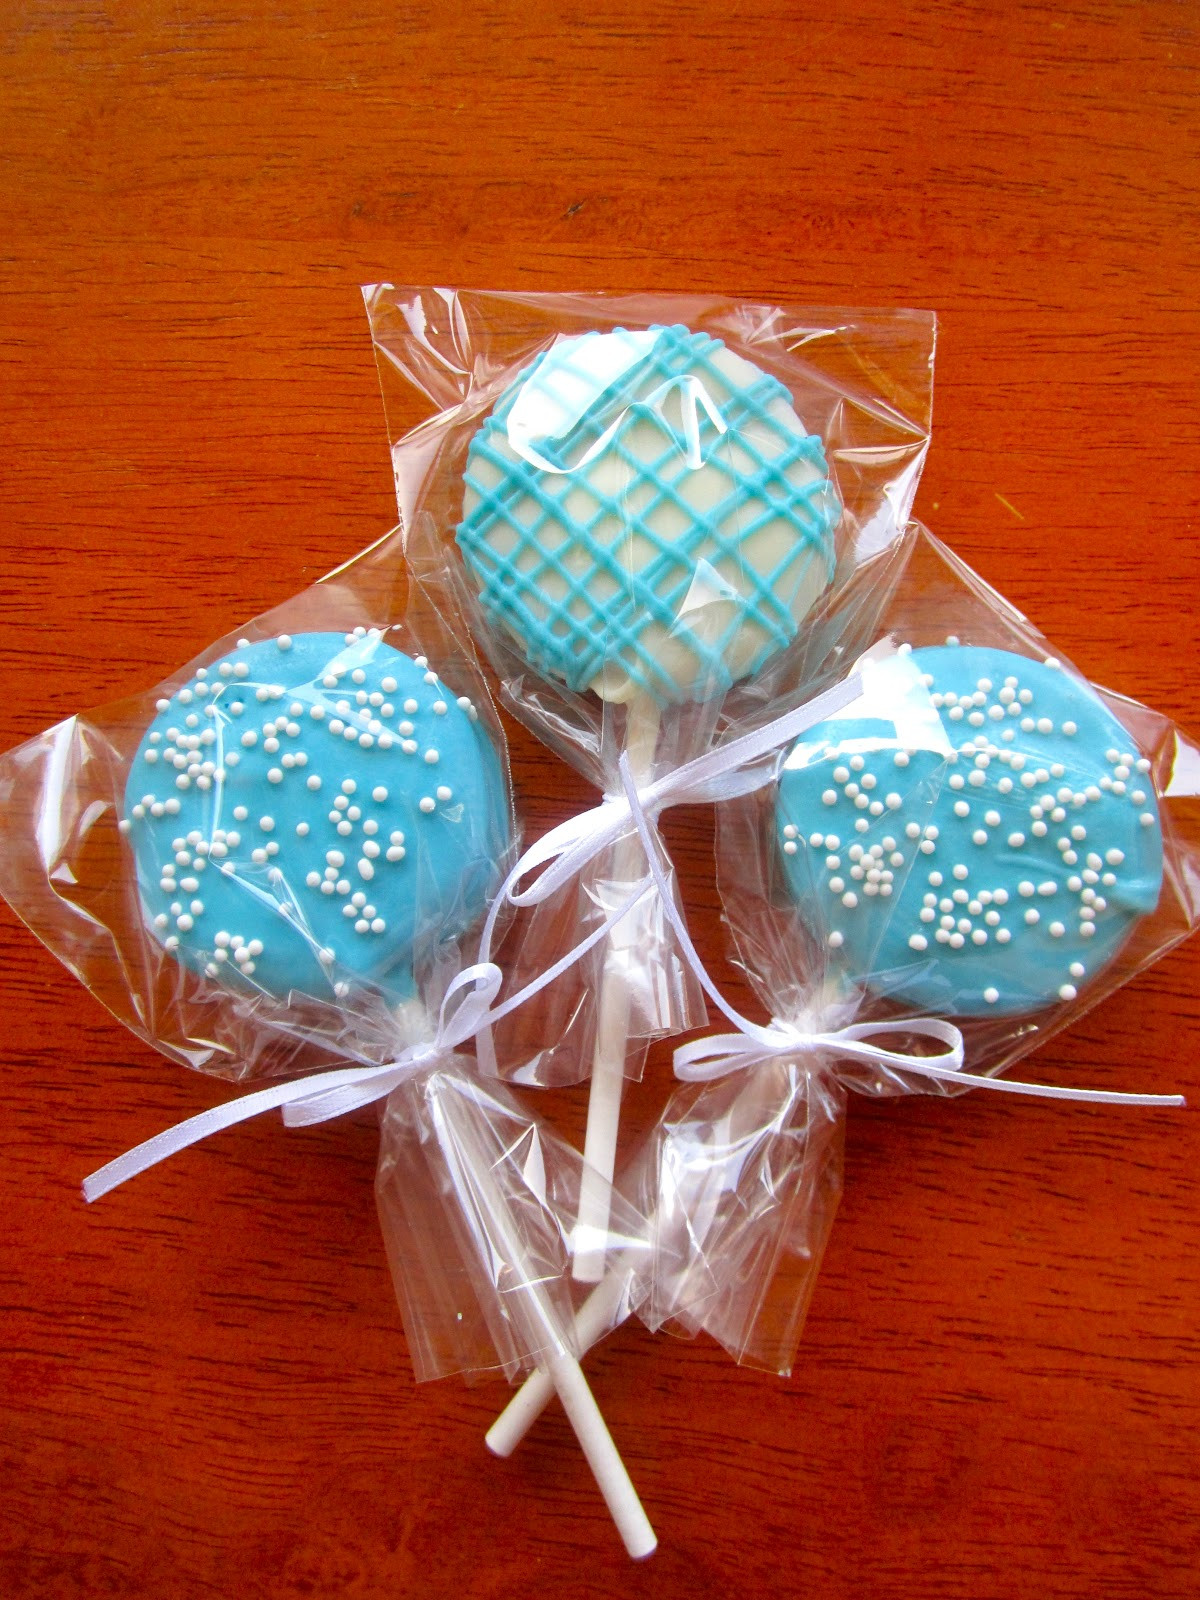 Best ideas about DIY Baby Shower Party Favors . Save or Pin 25 DIY Baby Shower Favors Now.